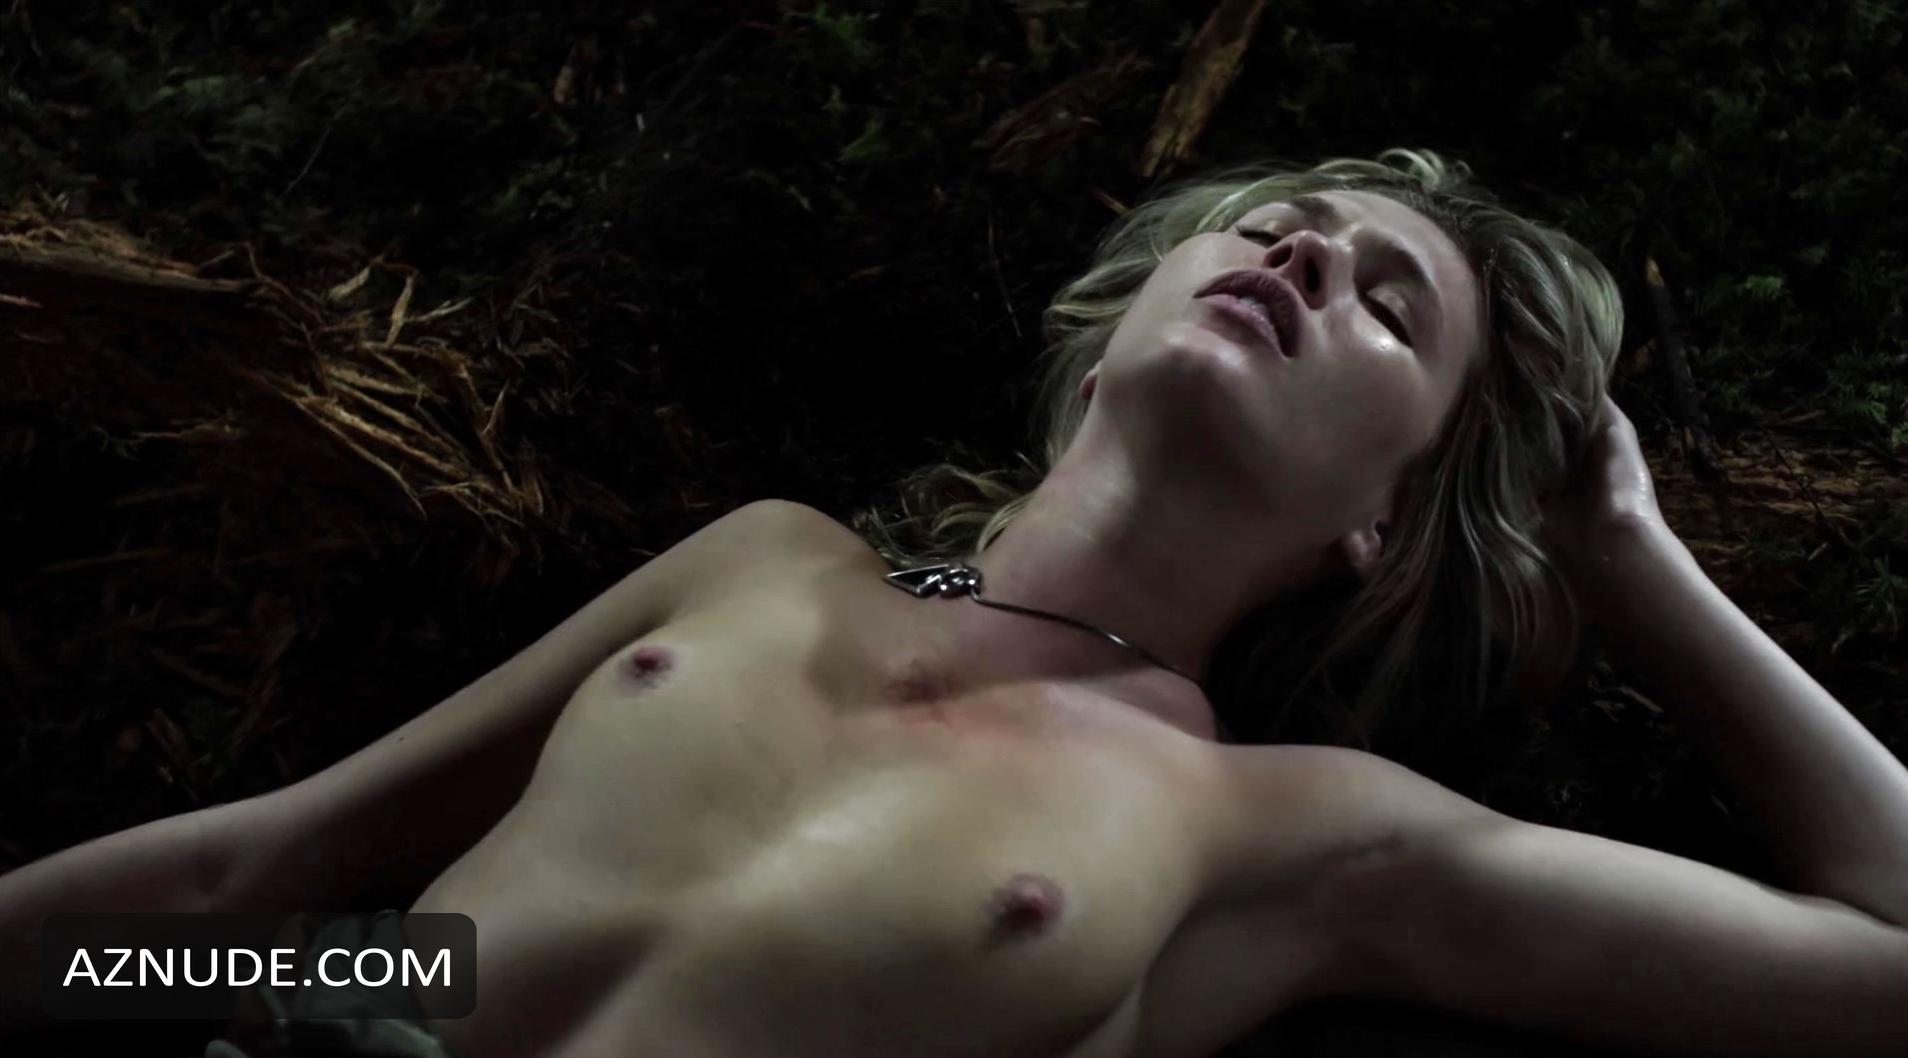 Vampire nude girl in movie scenes nsfw tit